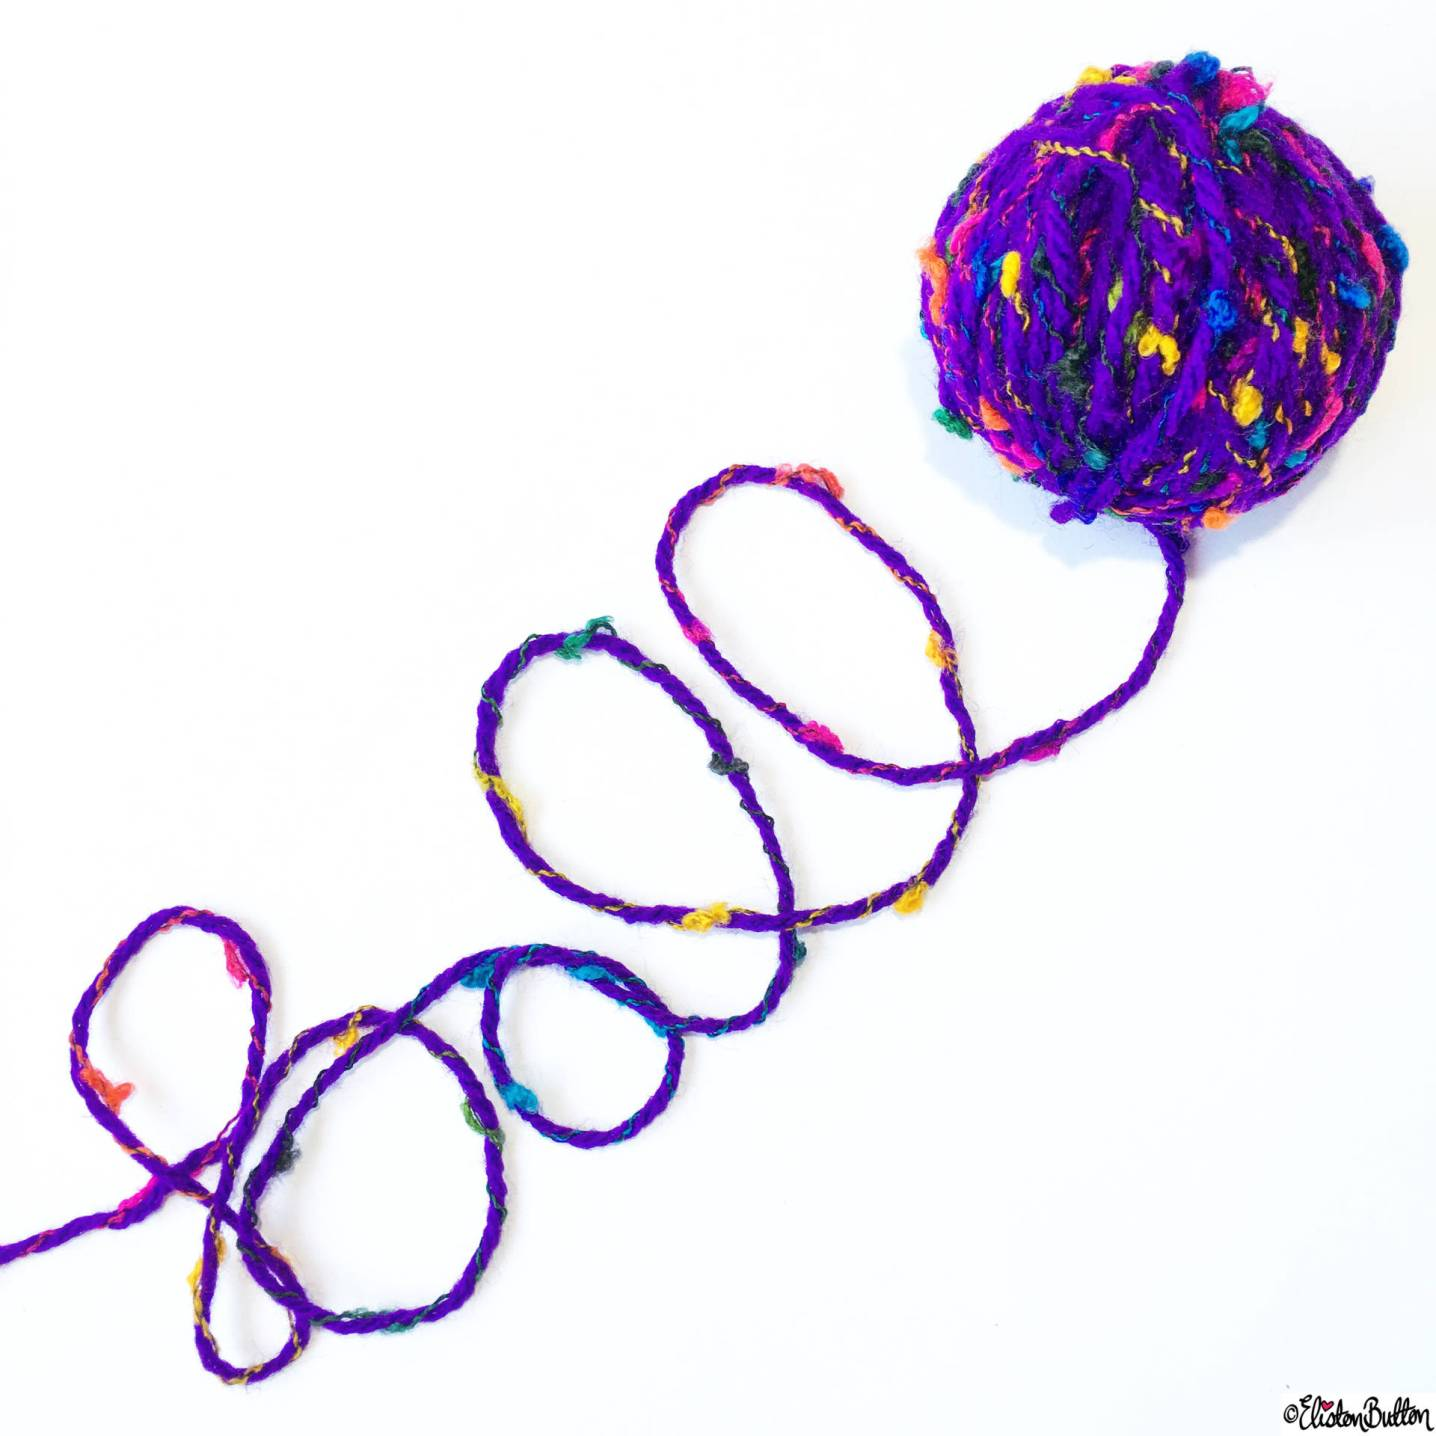 Day 04 - Ball - Ball Word Art in Wool/Yarn - Photo-a-Day – May 2016 at www.elistonbutton.com - Eliston Button - That Crafty Kid – Art, Design, Craft & Adventure.